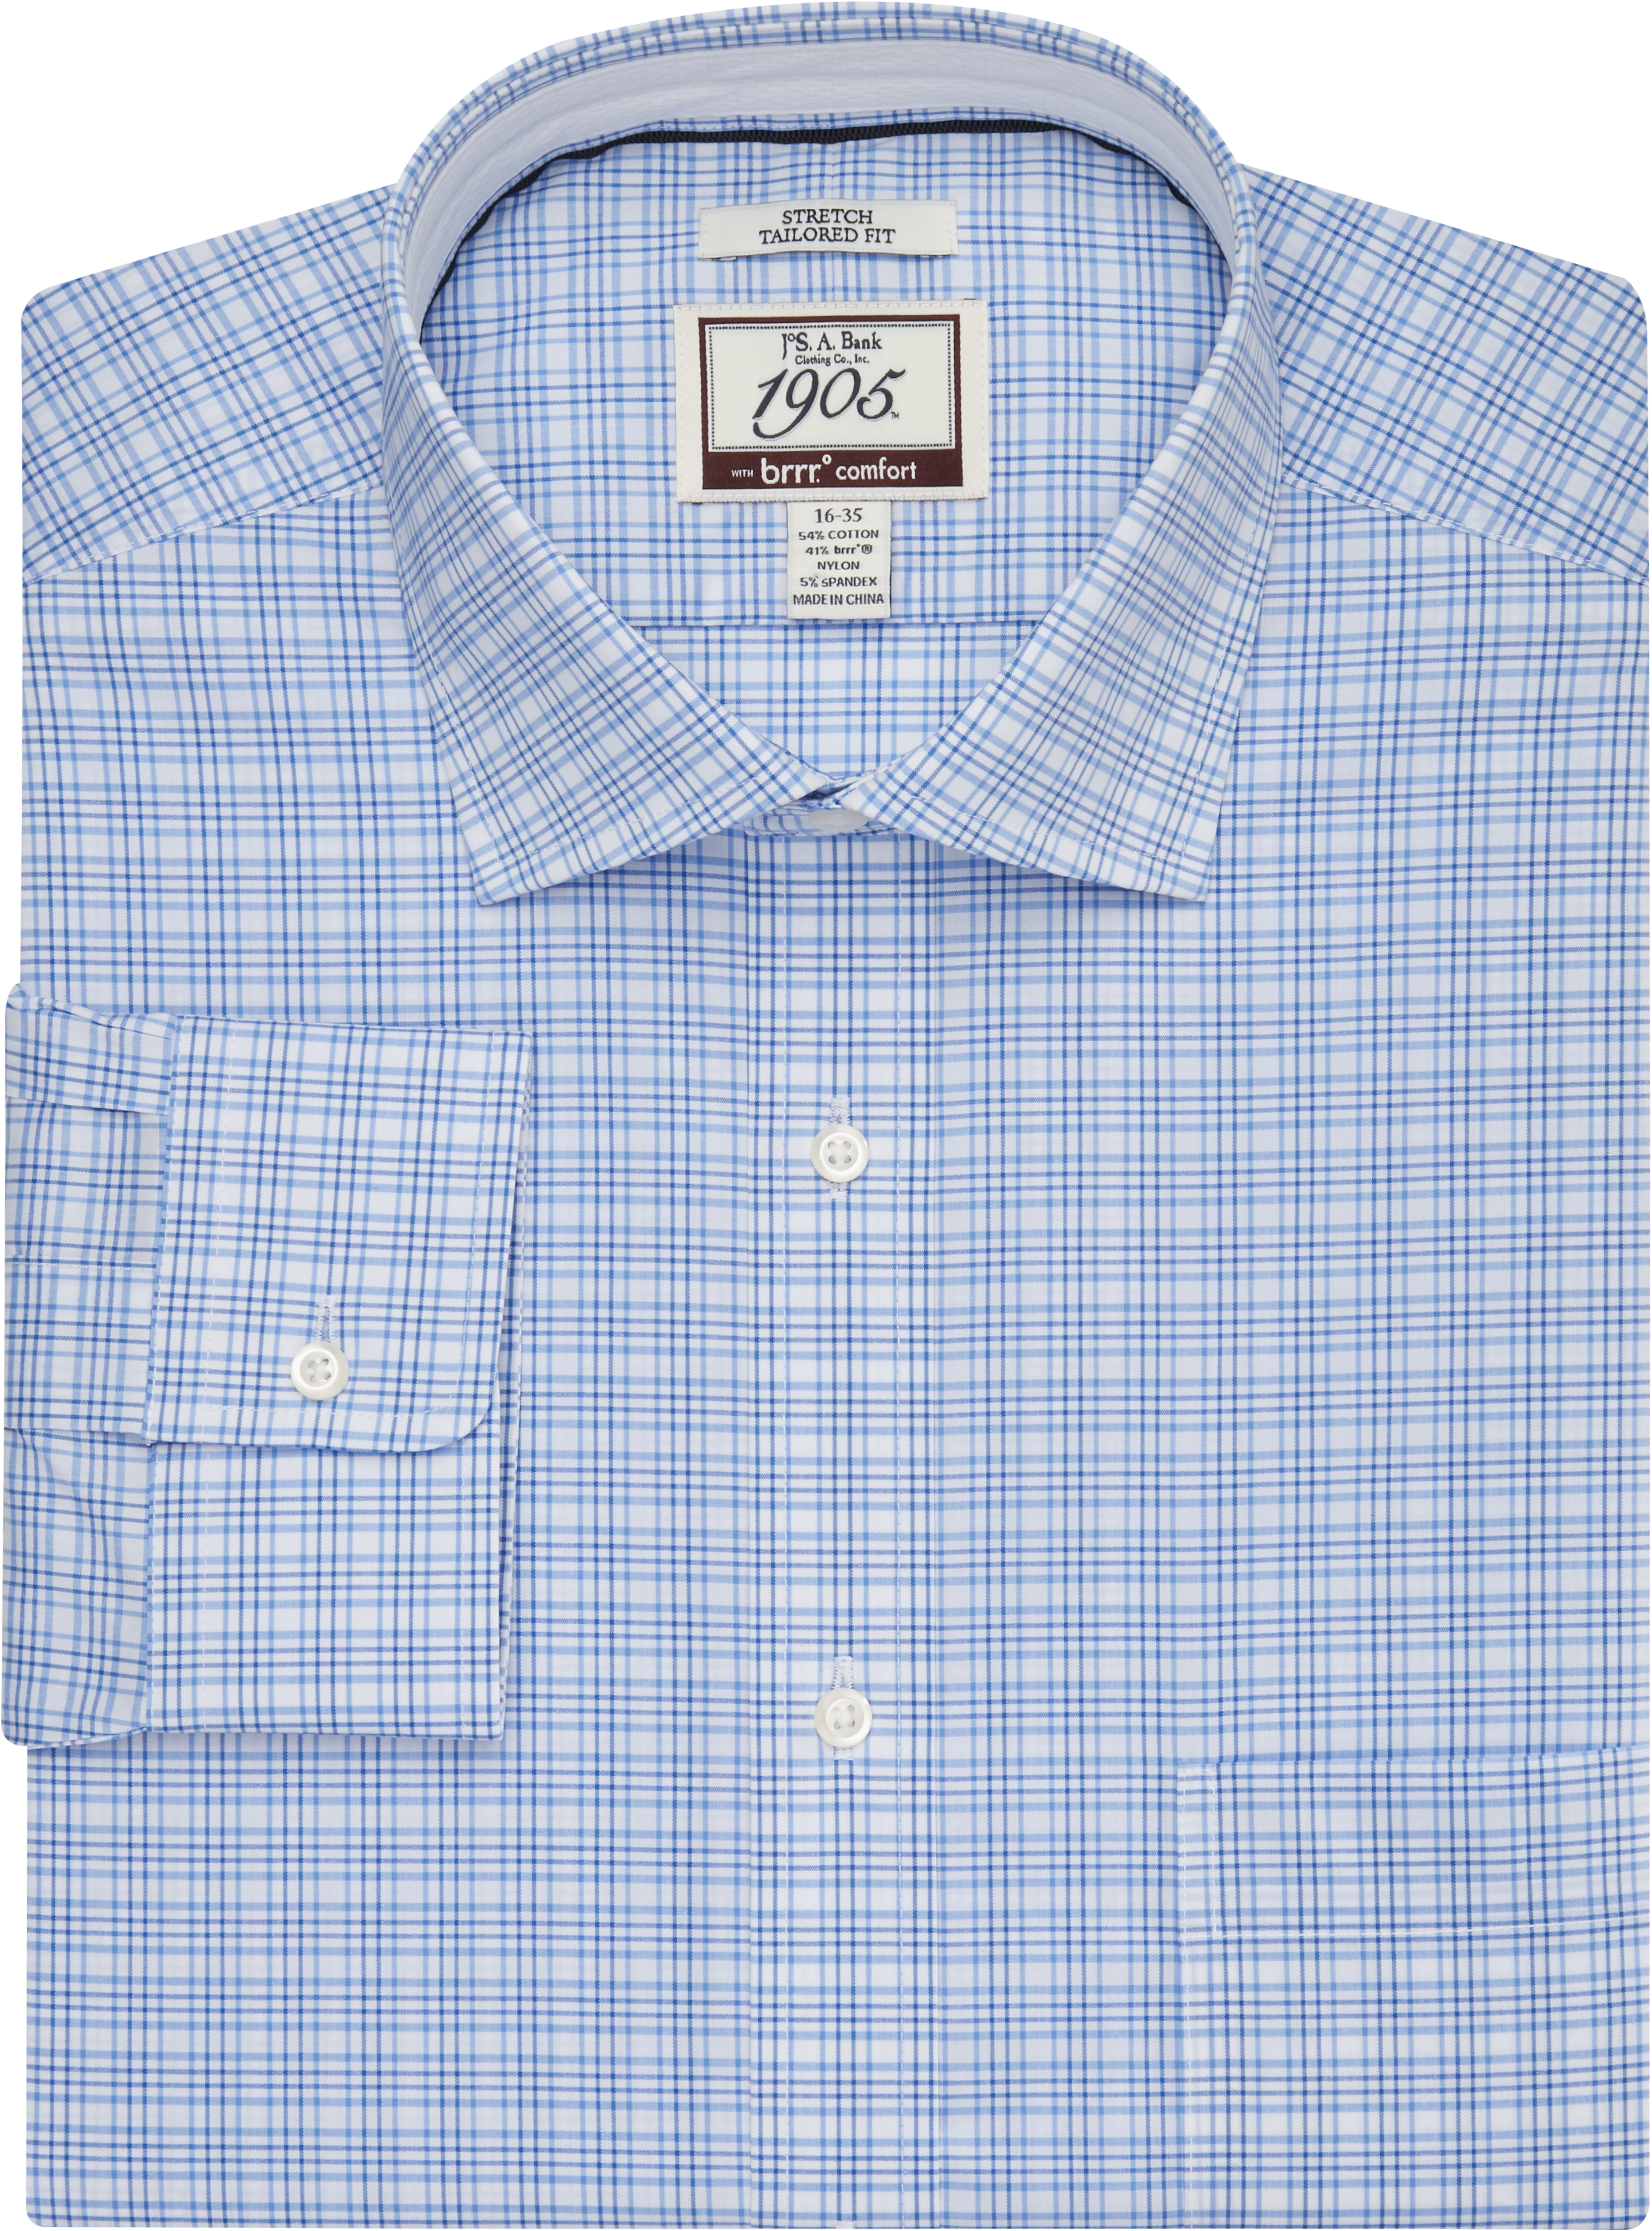 ecaa5789ef 1905 Collection Tailored Fit Spread Collar Tattersall Plaid Dress Shirt  with brrr° comfort